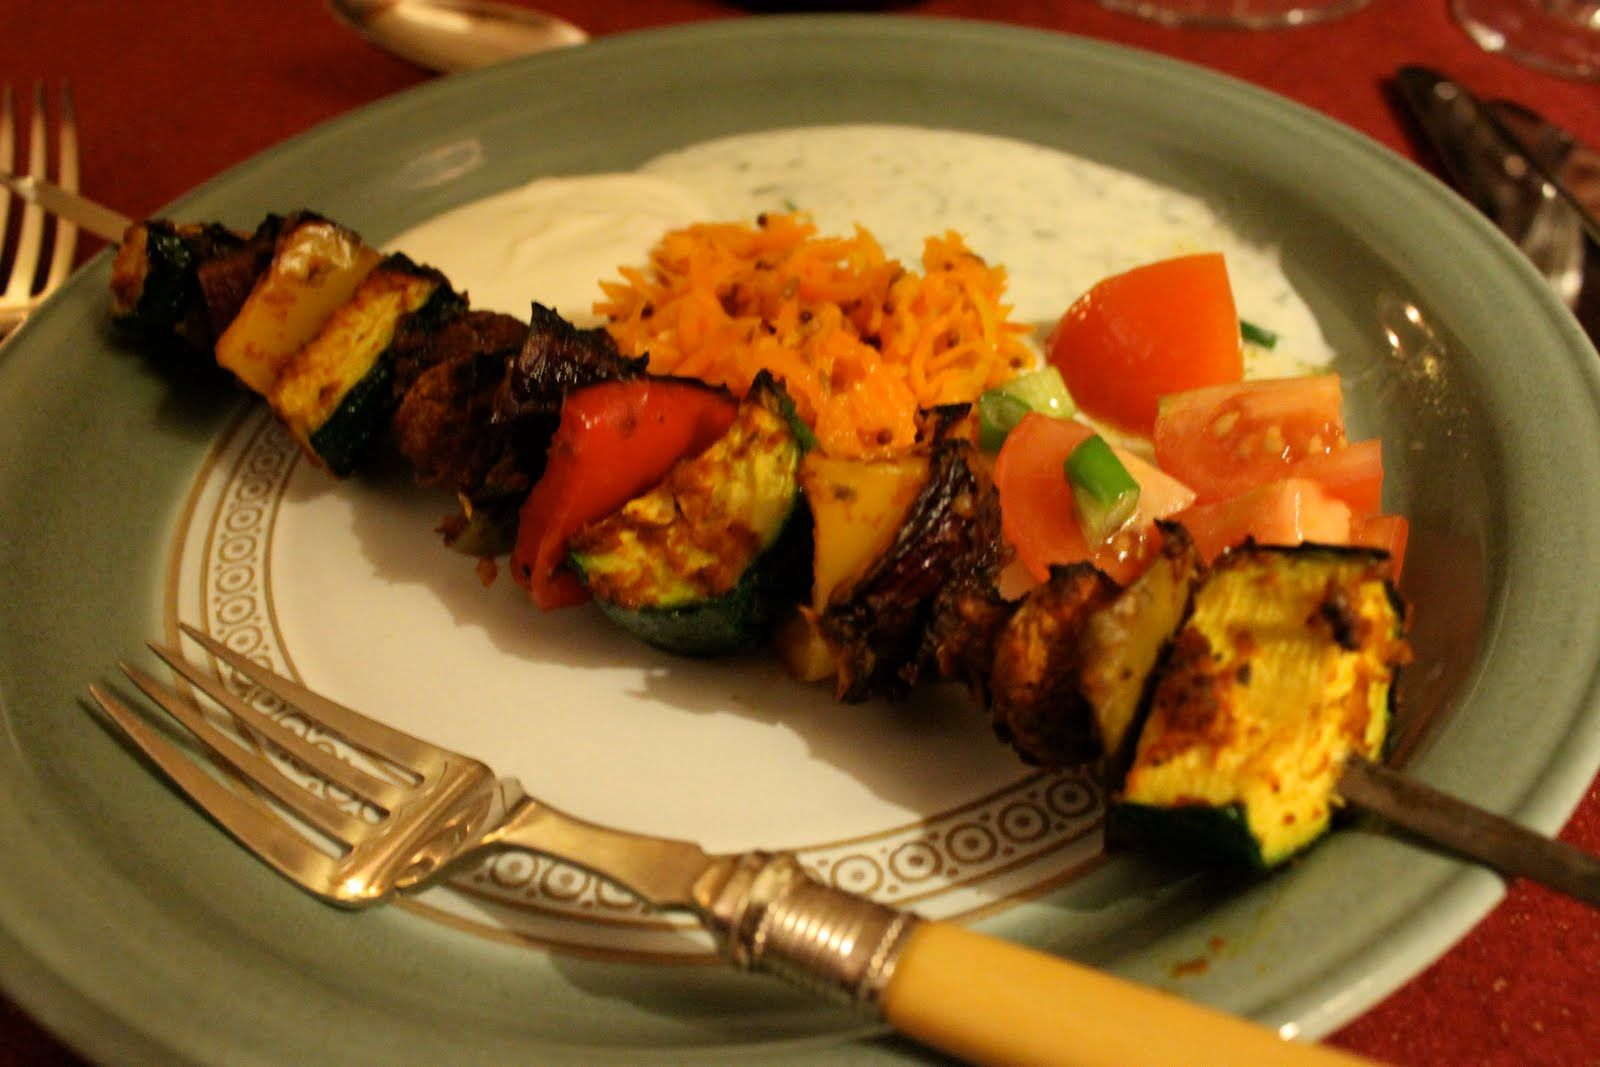 vegetable Kebab from Joginder's Supper club hosted by Rani and Saira. Find out more about this supper club on CookoutChef.com #cookoutchef